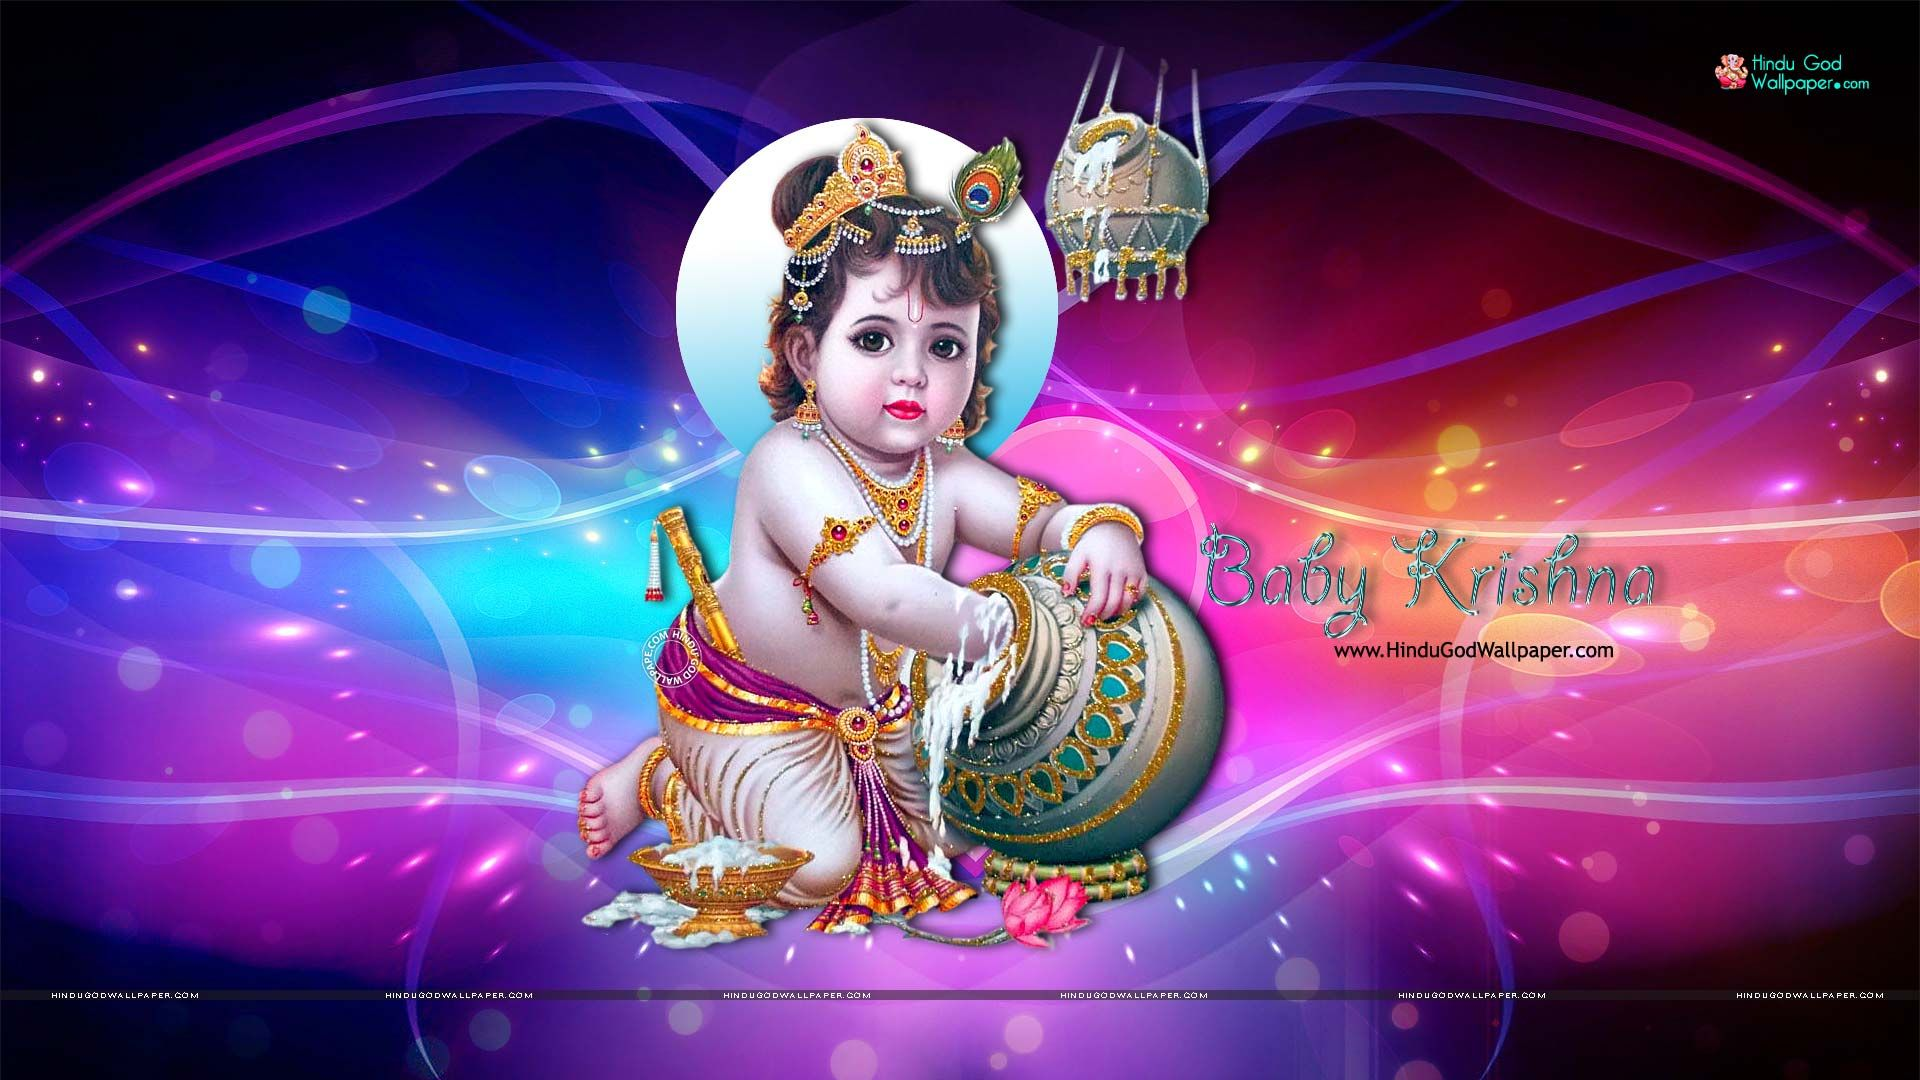 1080p Baby Krishna Hd Wallpapers Full Size Download In 2019 Baby